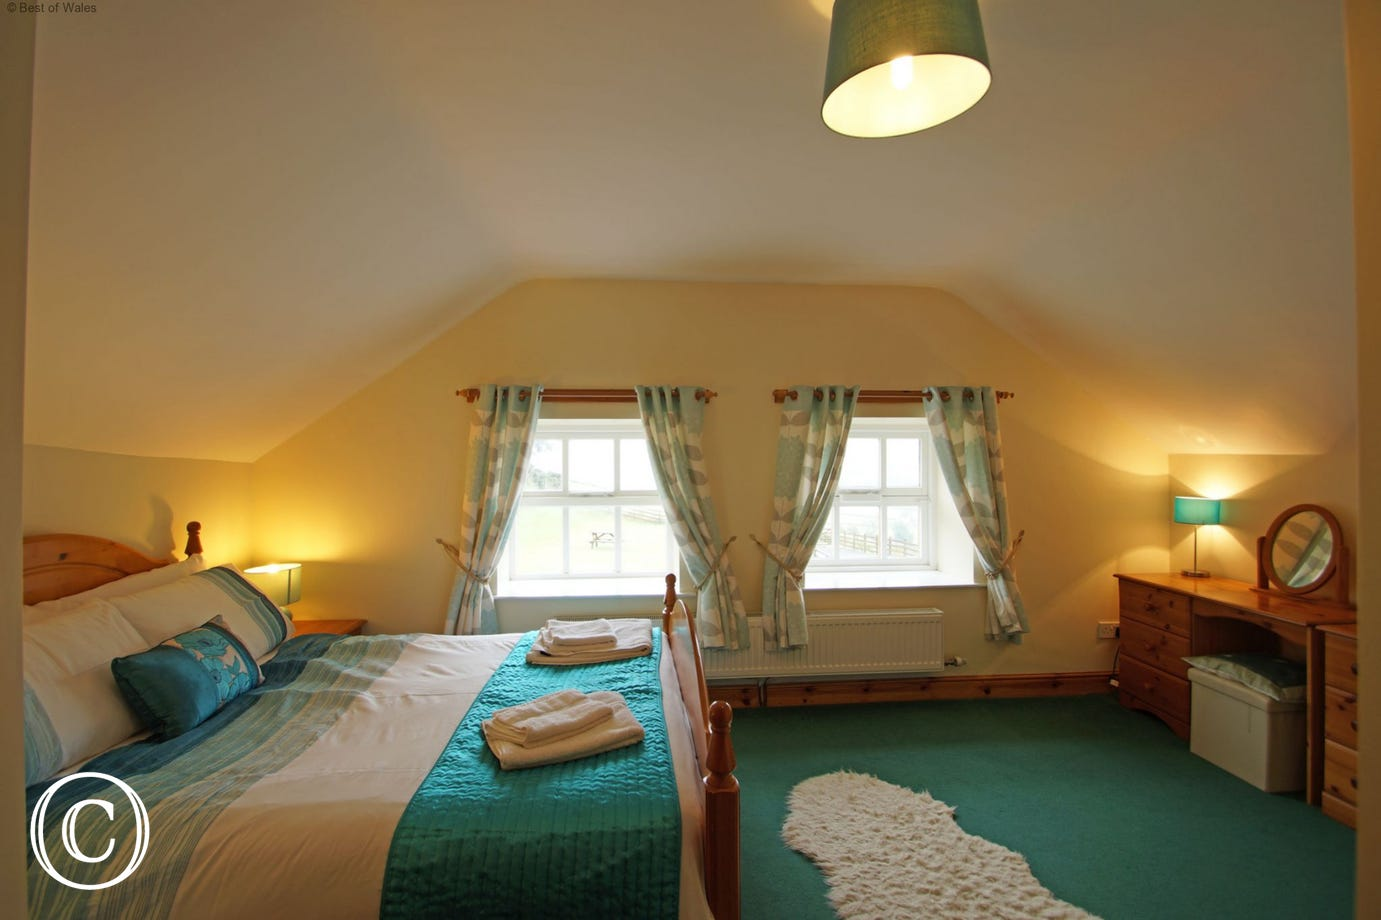 The spacious double bedroom offers beautiful views over Snowdonia countryside